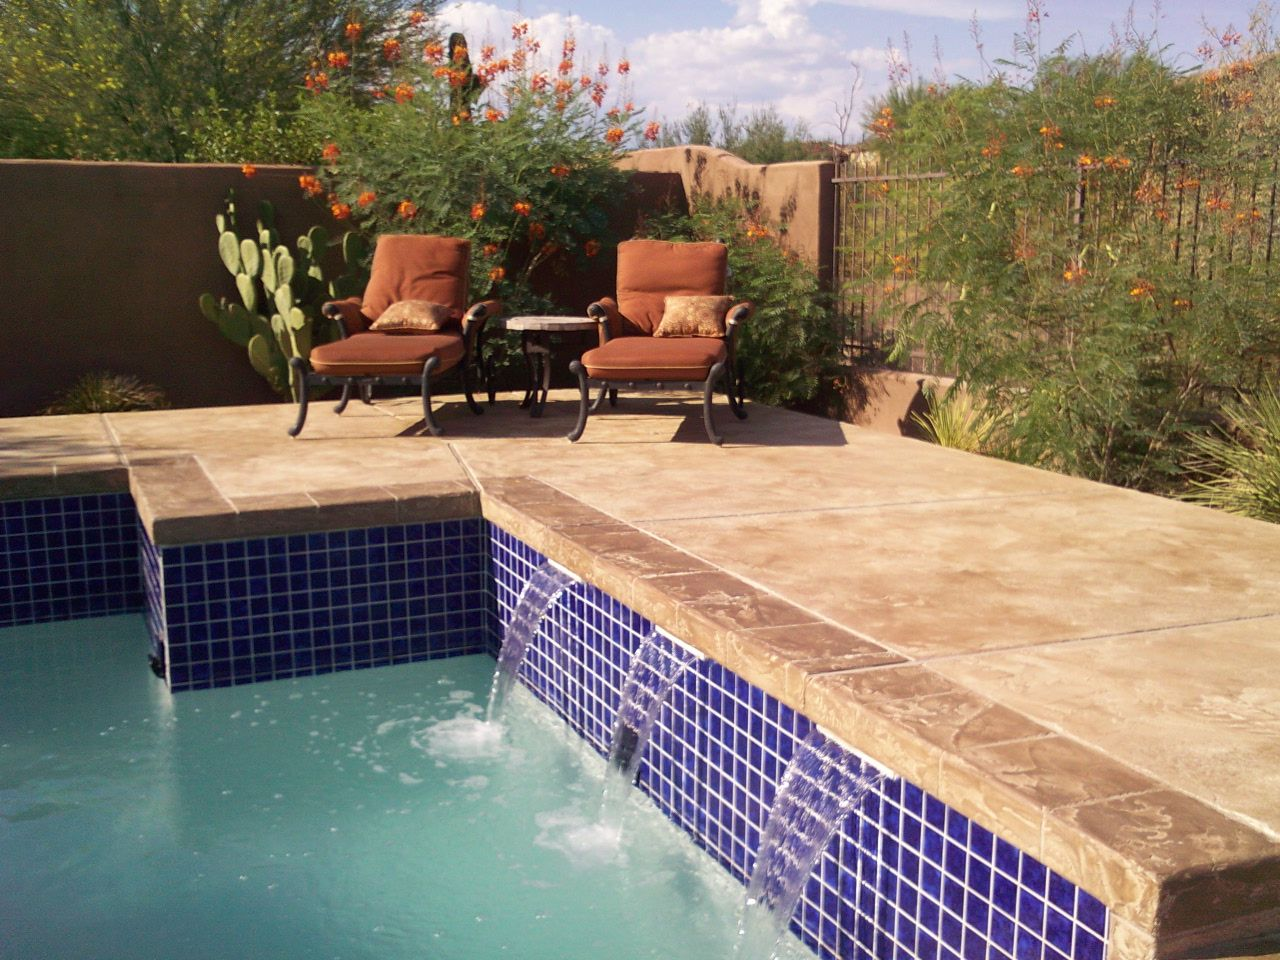 Decorative Patio Tiles Magnificent Acid Stain Concrete Pool Deck  Google Search  Home Ideas 2018